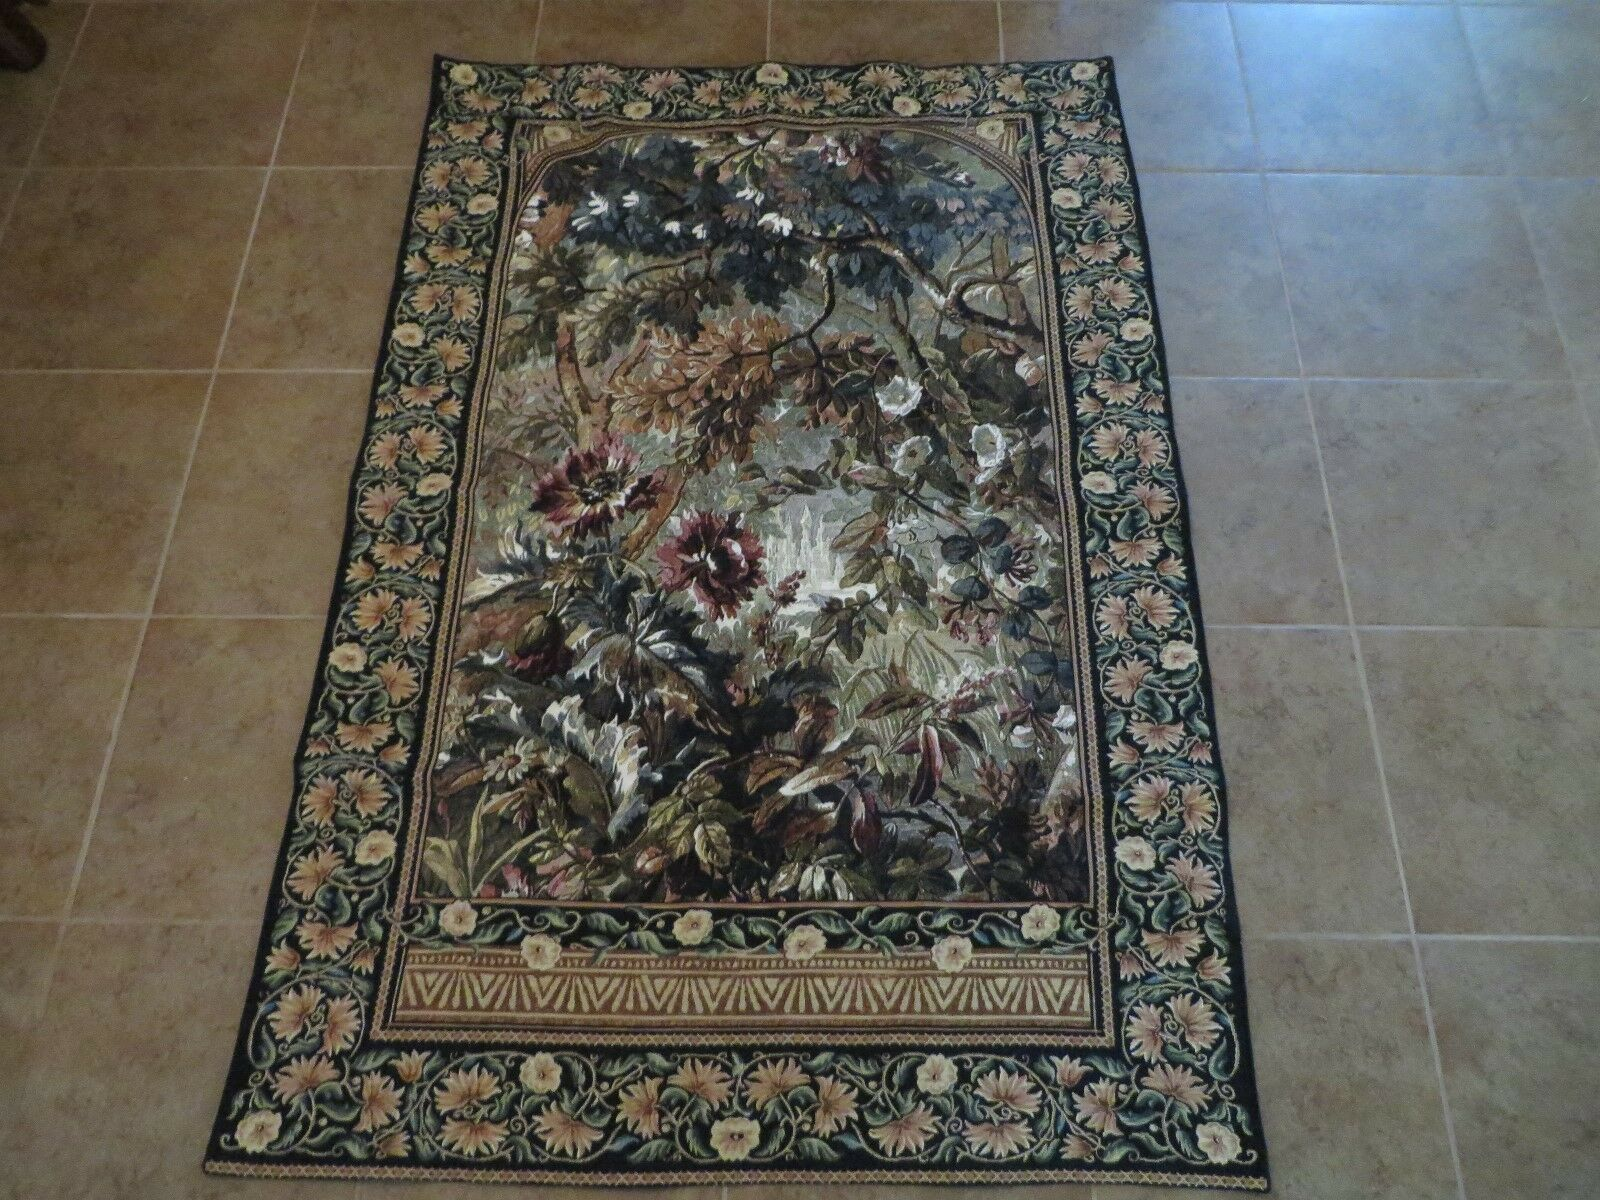 Riddle Home & Gift Tapisserie Monet Inspiré Floral Tapestry Wall Hanging 76 x 51